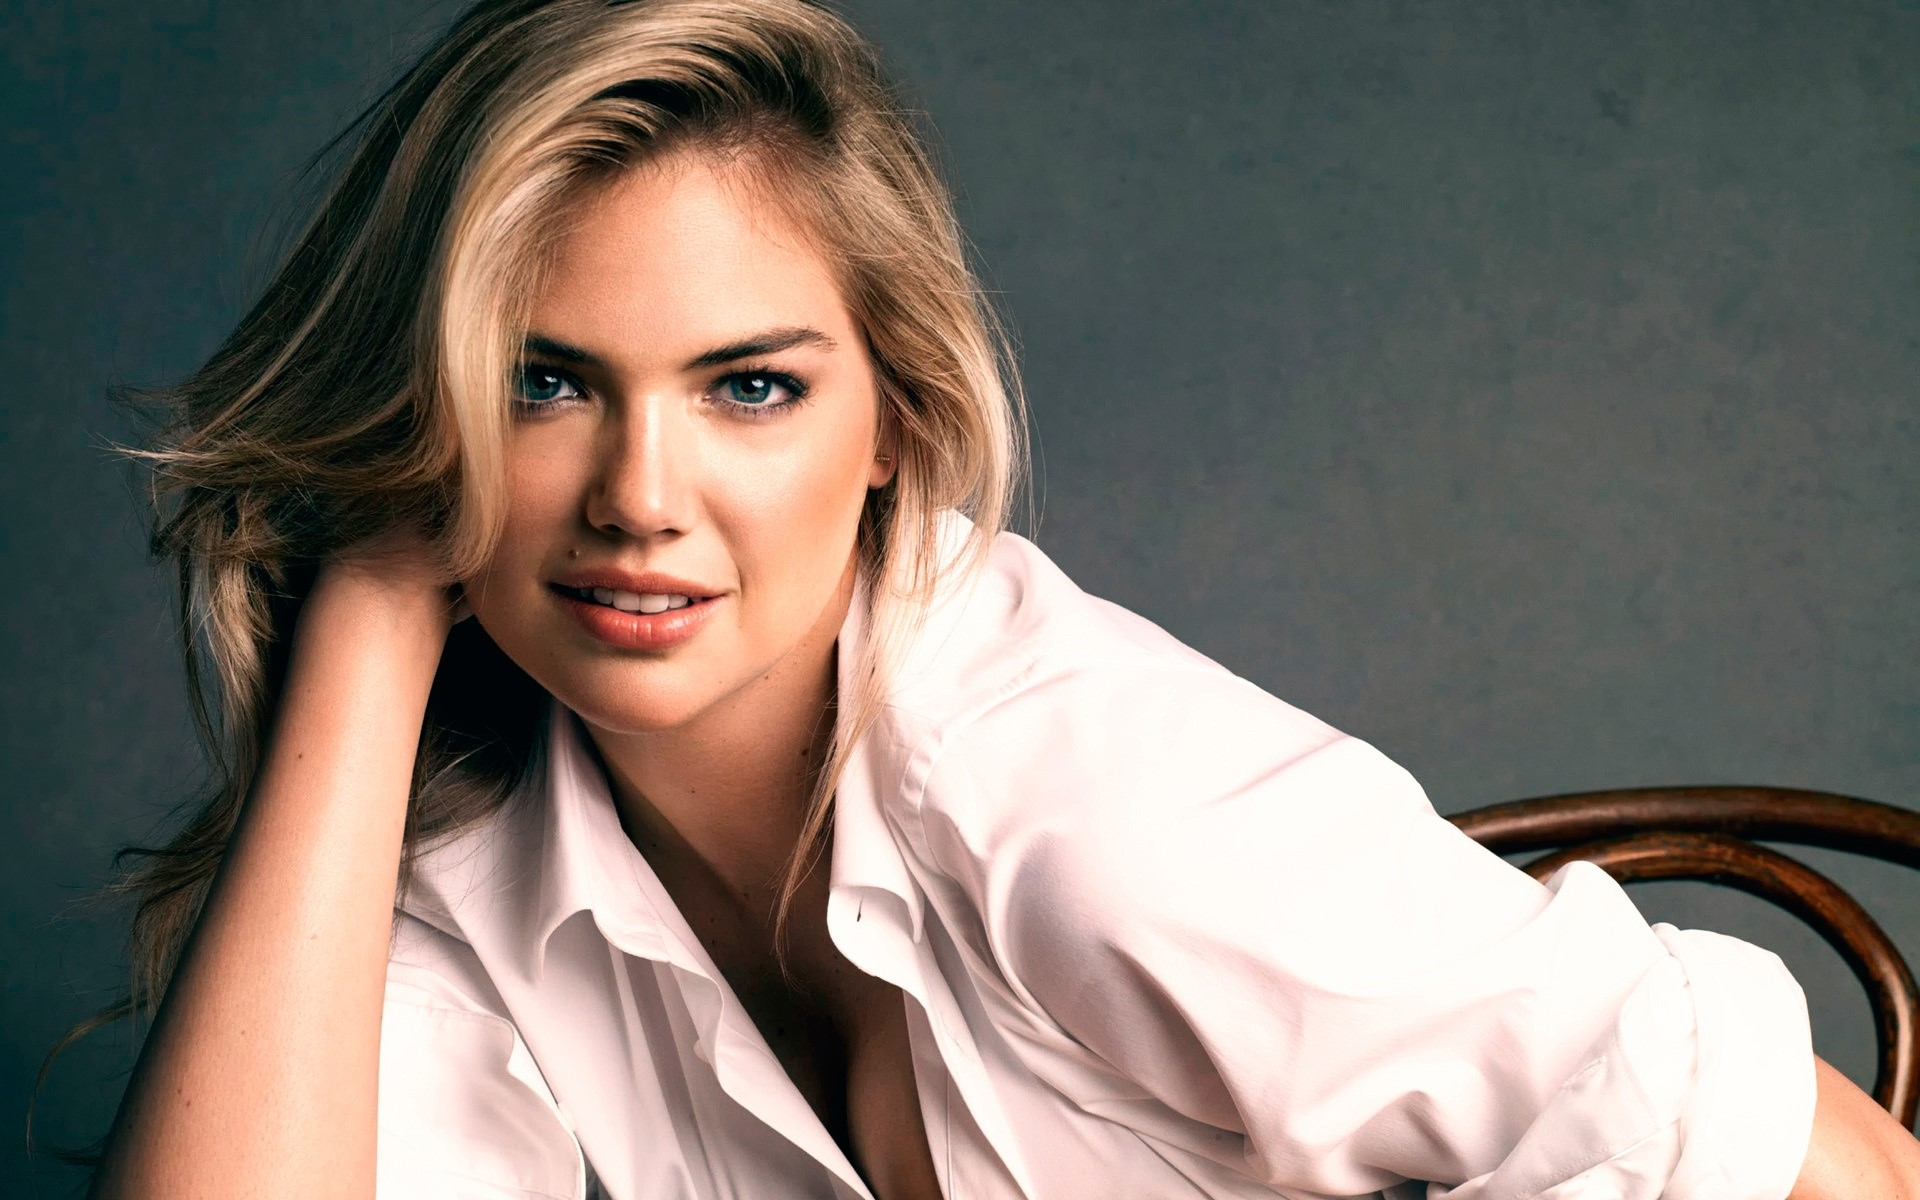 Wallpaper Kate Upton